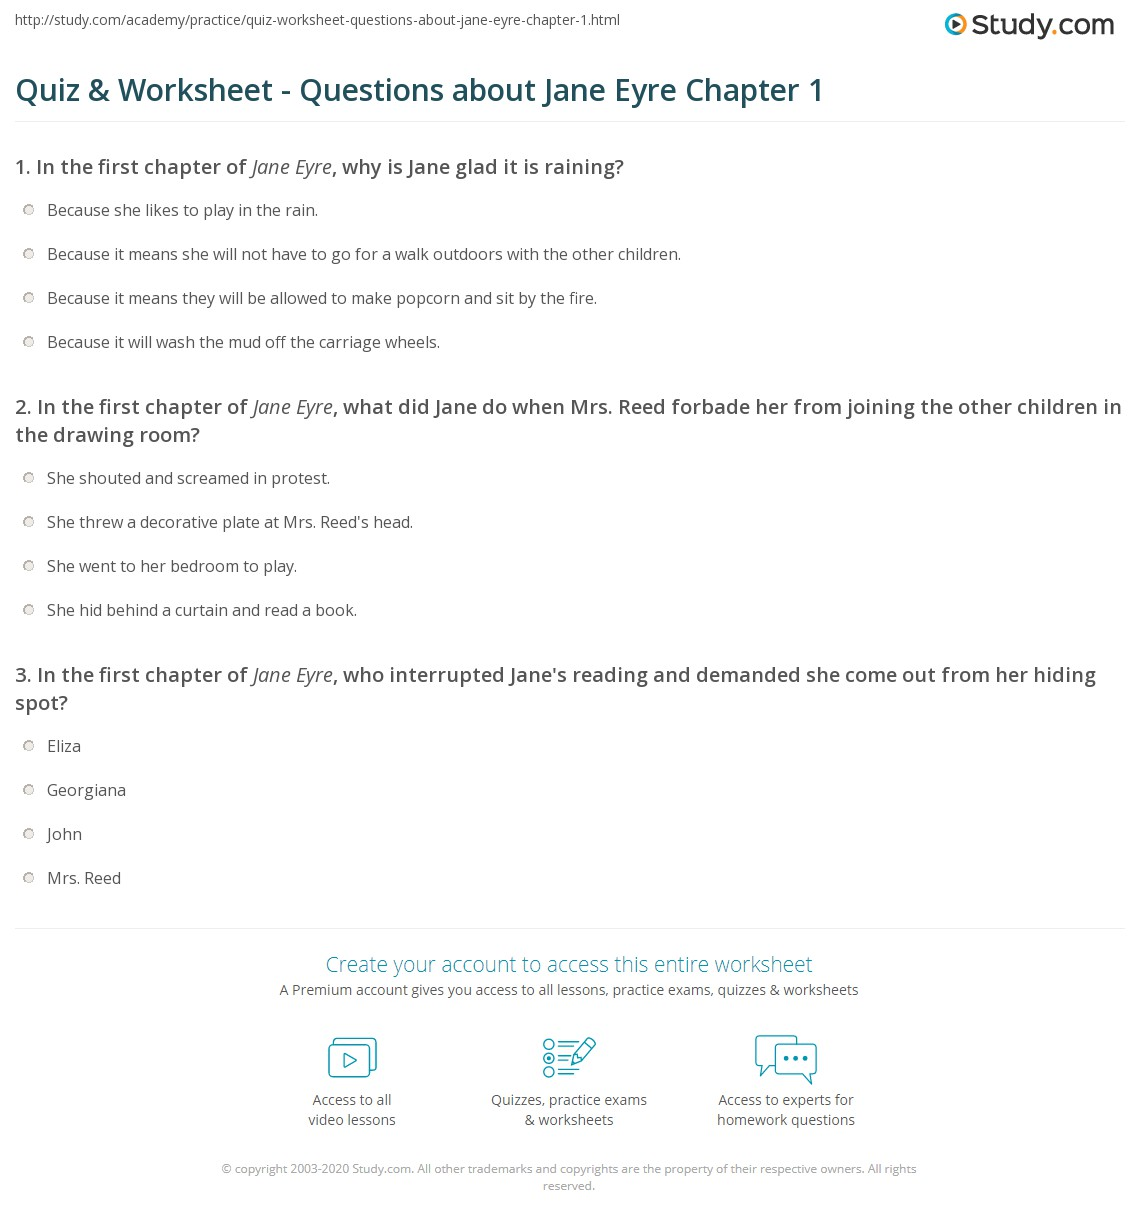 eyre essay questions